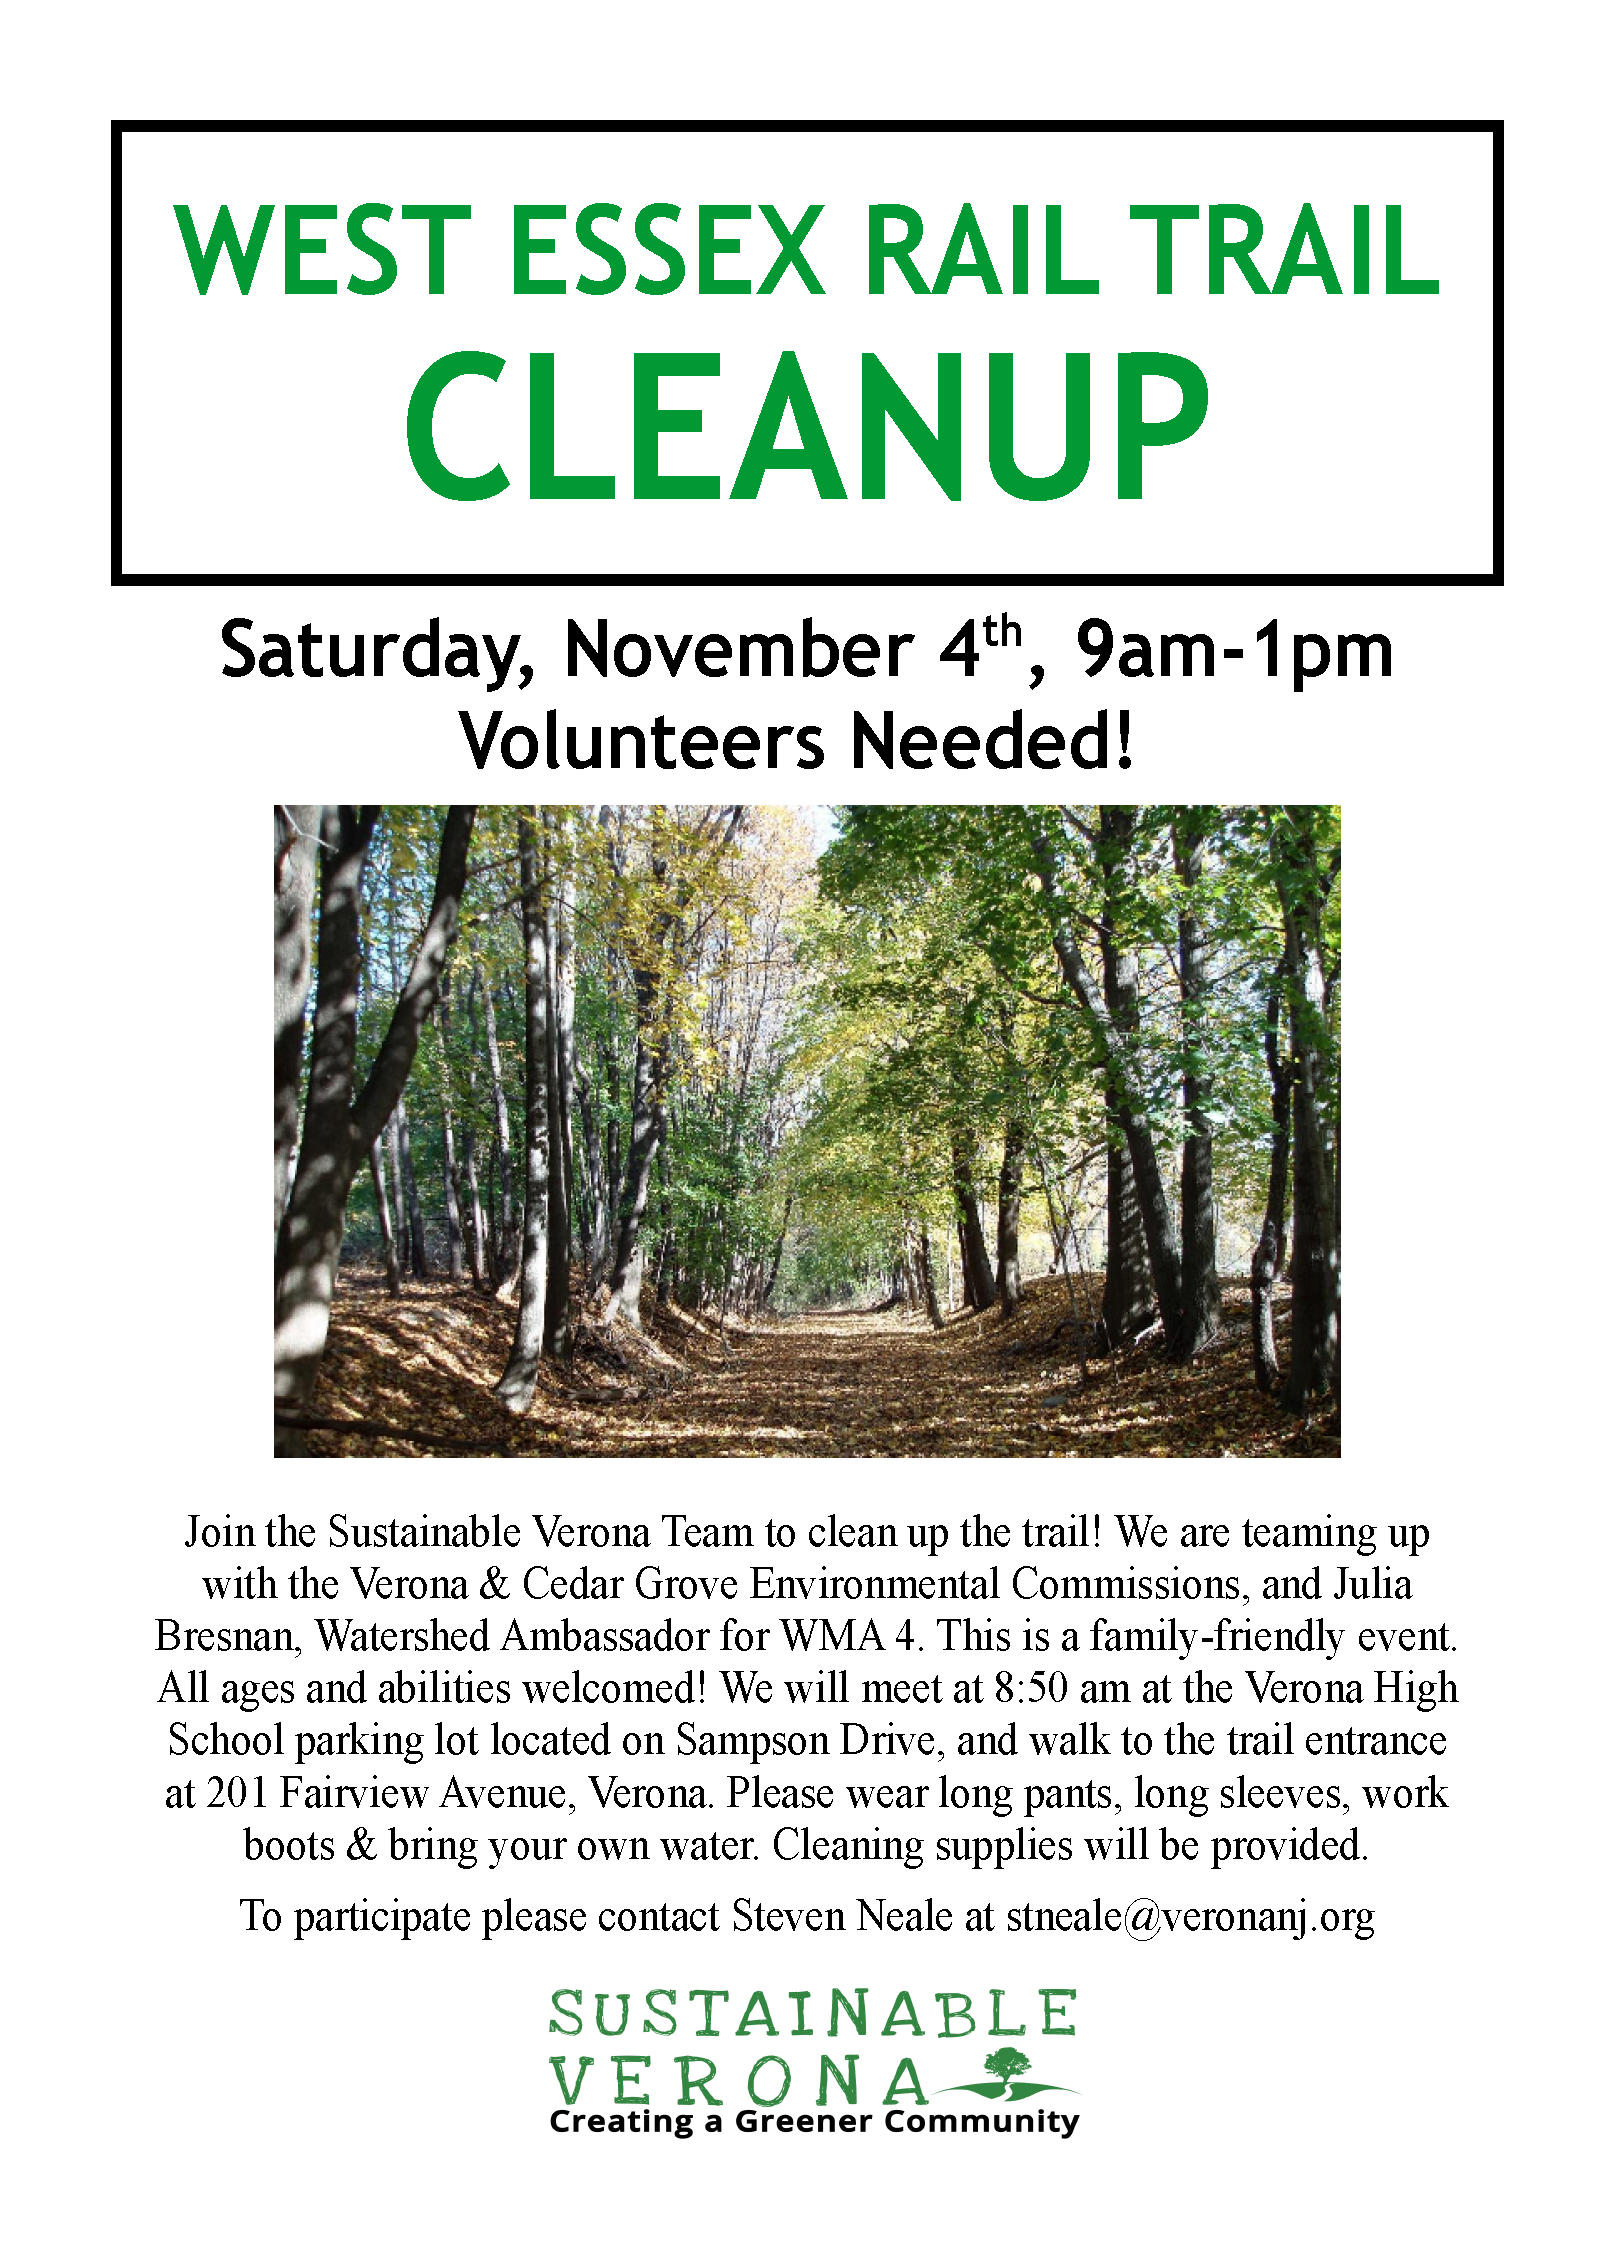 336071708e1270ac6950_West_Essex_Trail_Cleanup_Nov_4.jpg